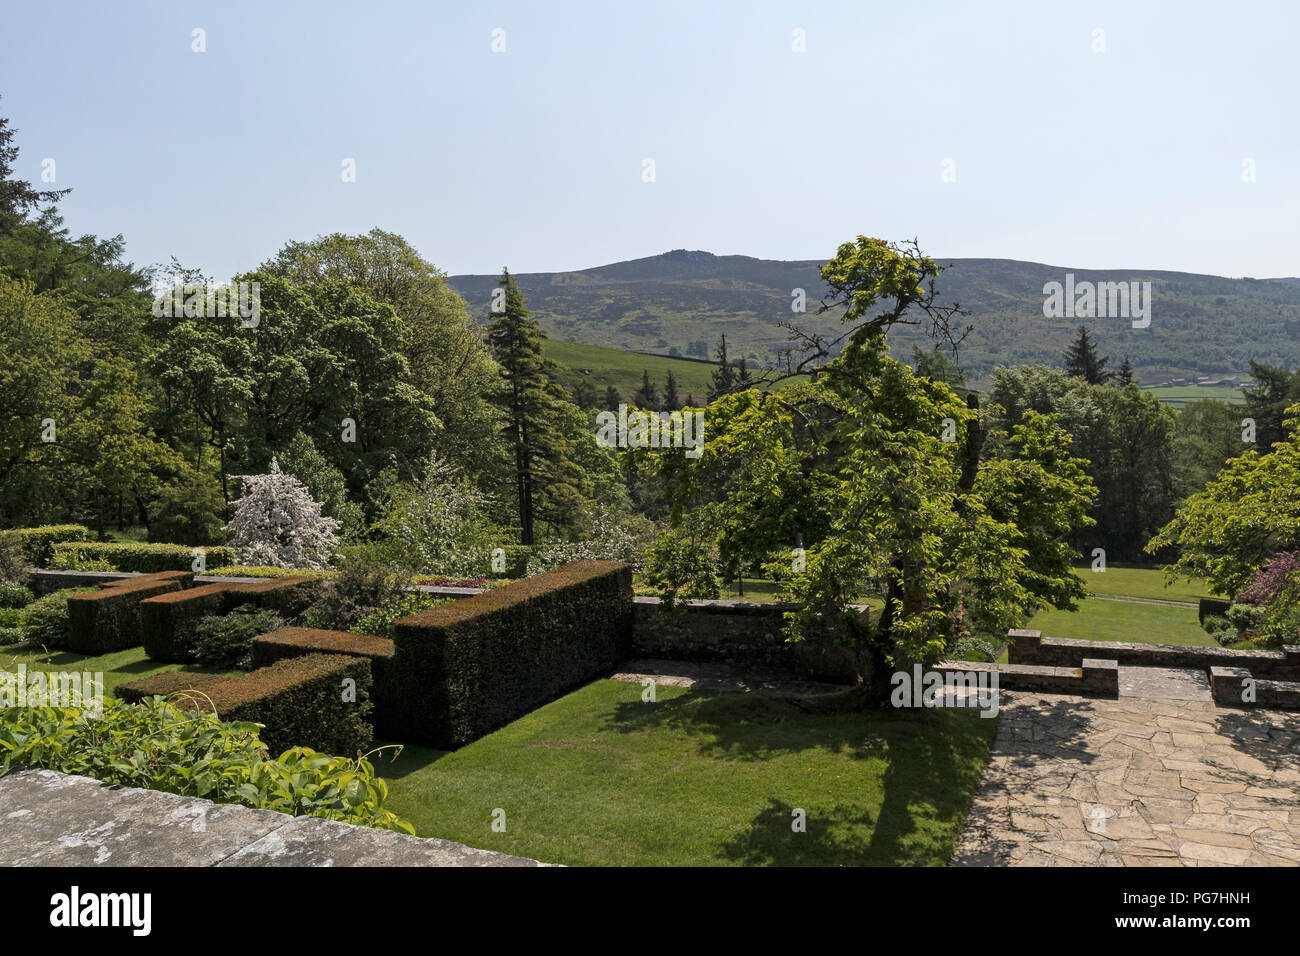 Parcevall Hall & Gardens, at Skyreholme in Wharfedale, Yorkshire Dales, UK - Stock Image